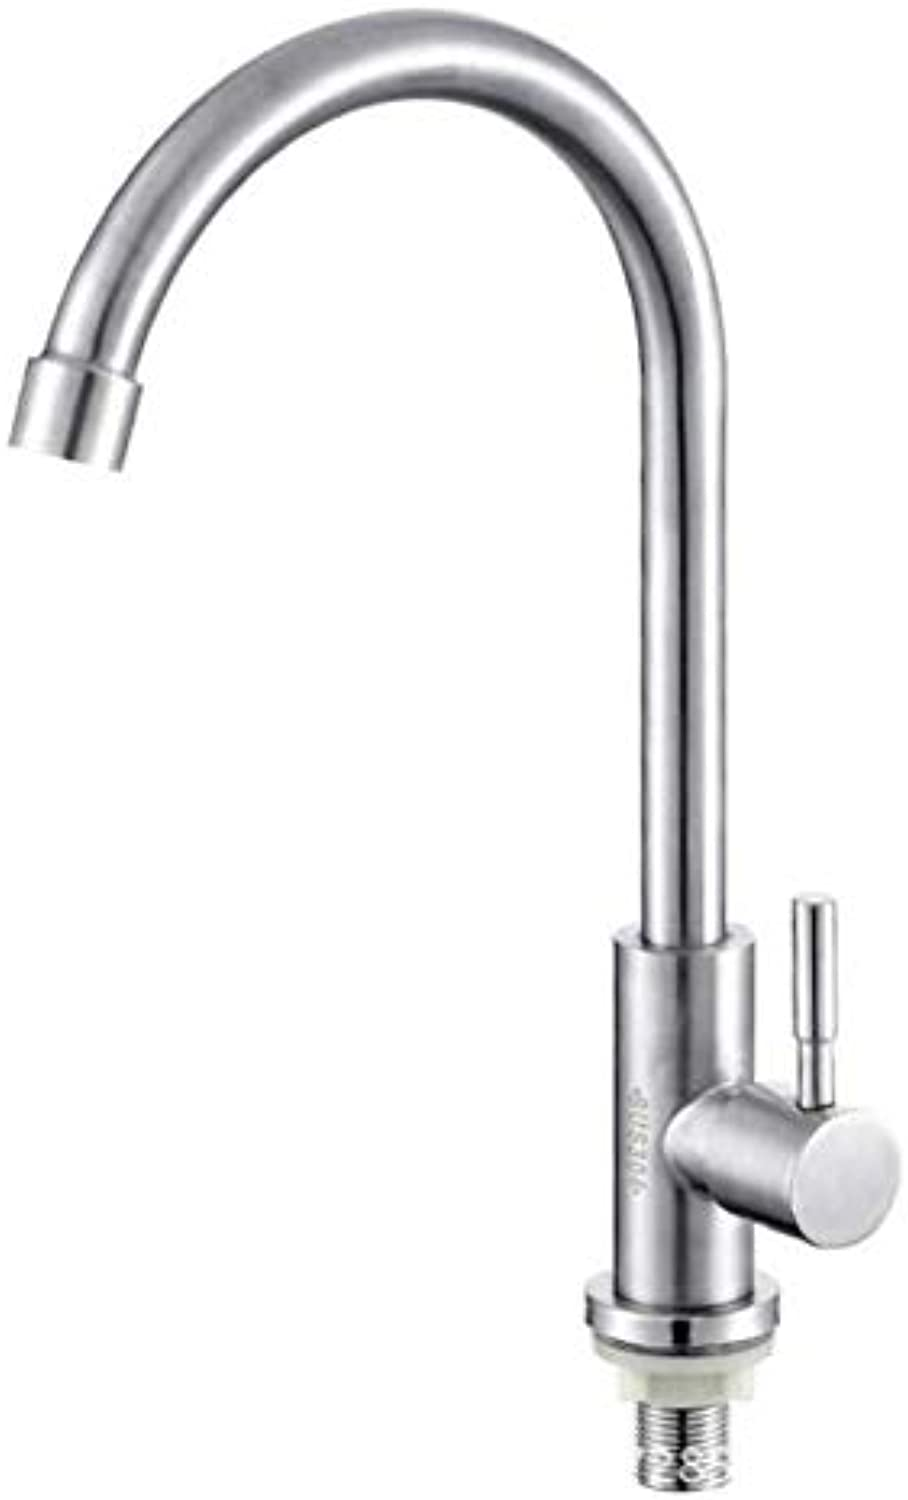 Modern Waterfall 304 Stainless Steel redating Tube Kitchen Faucet Sink Single Cold Sink Faucet